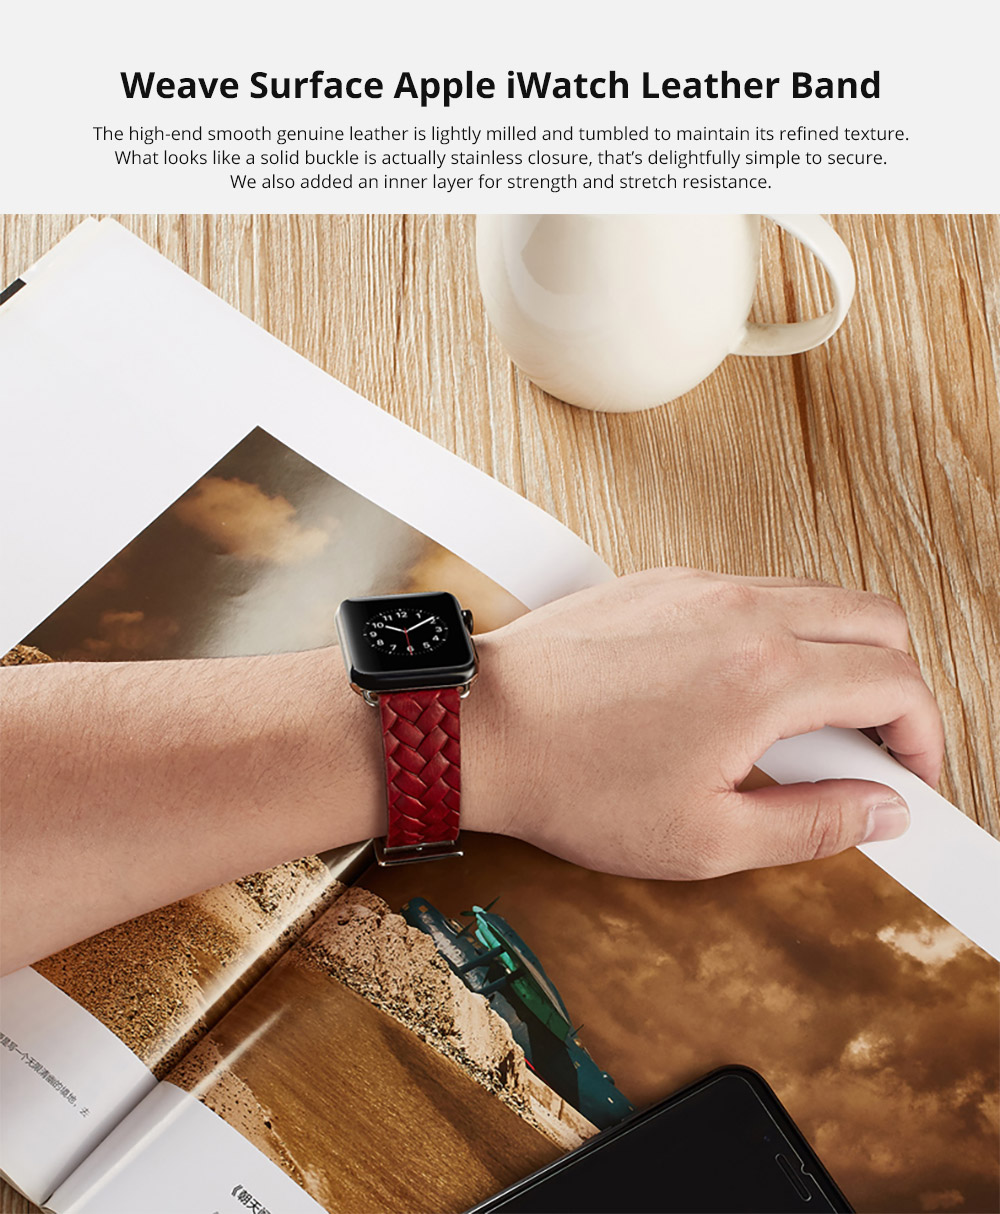 Weave Surface Apple iWatch Leather Band